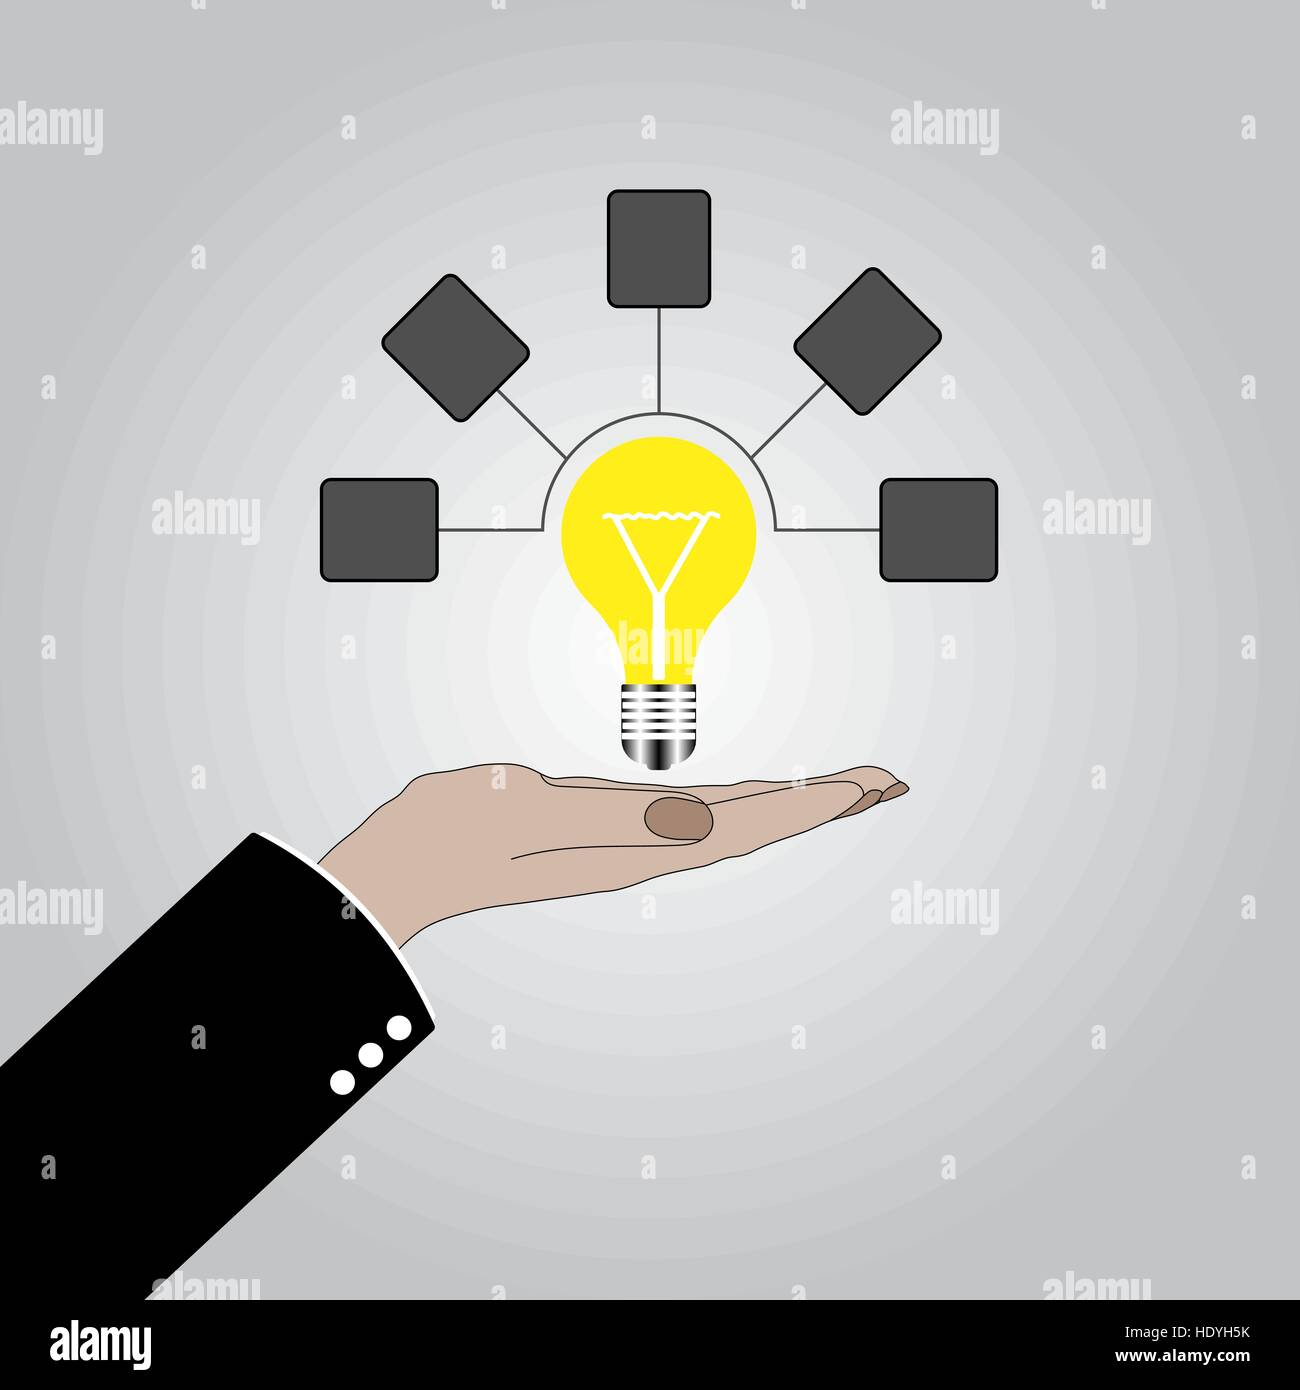 Idees And Solutions: Hand Holding Lightbulb Concept. Business Idea, Solution